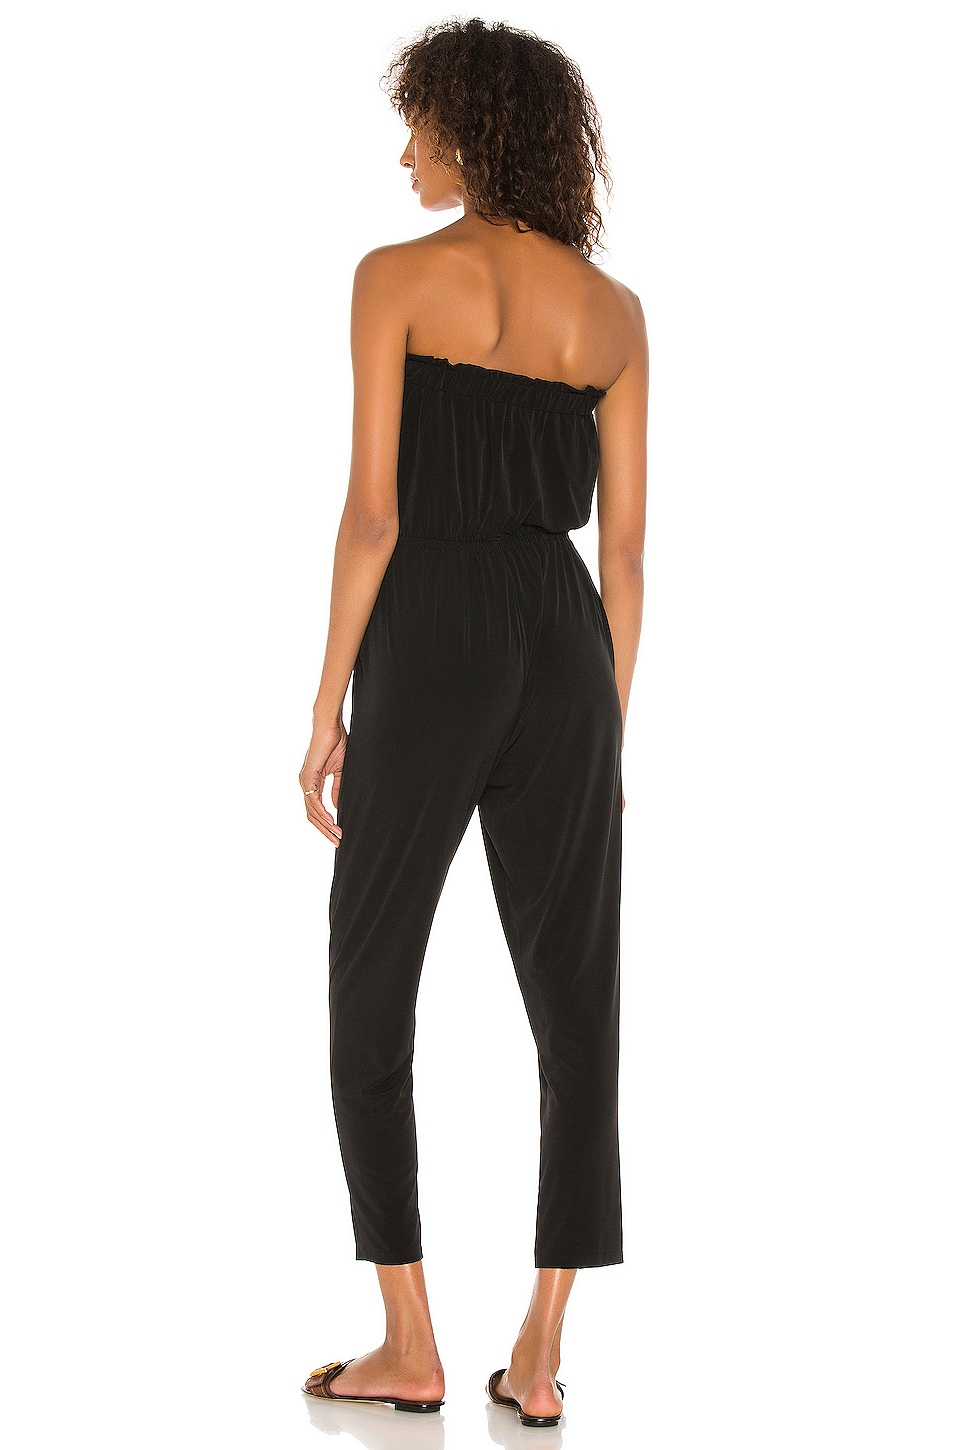 Strapless Knit Jumpsuit, view 3, click to view large image.